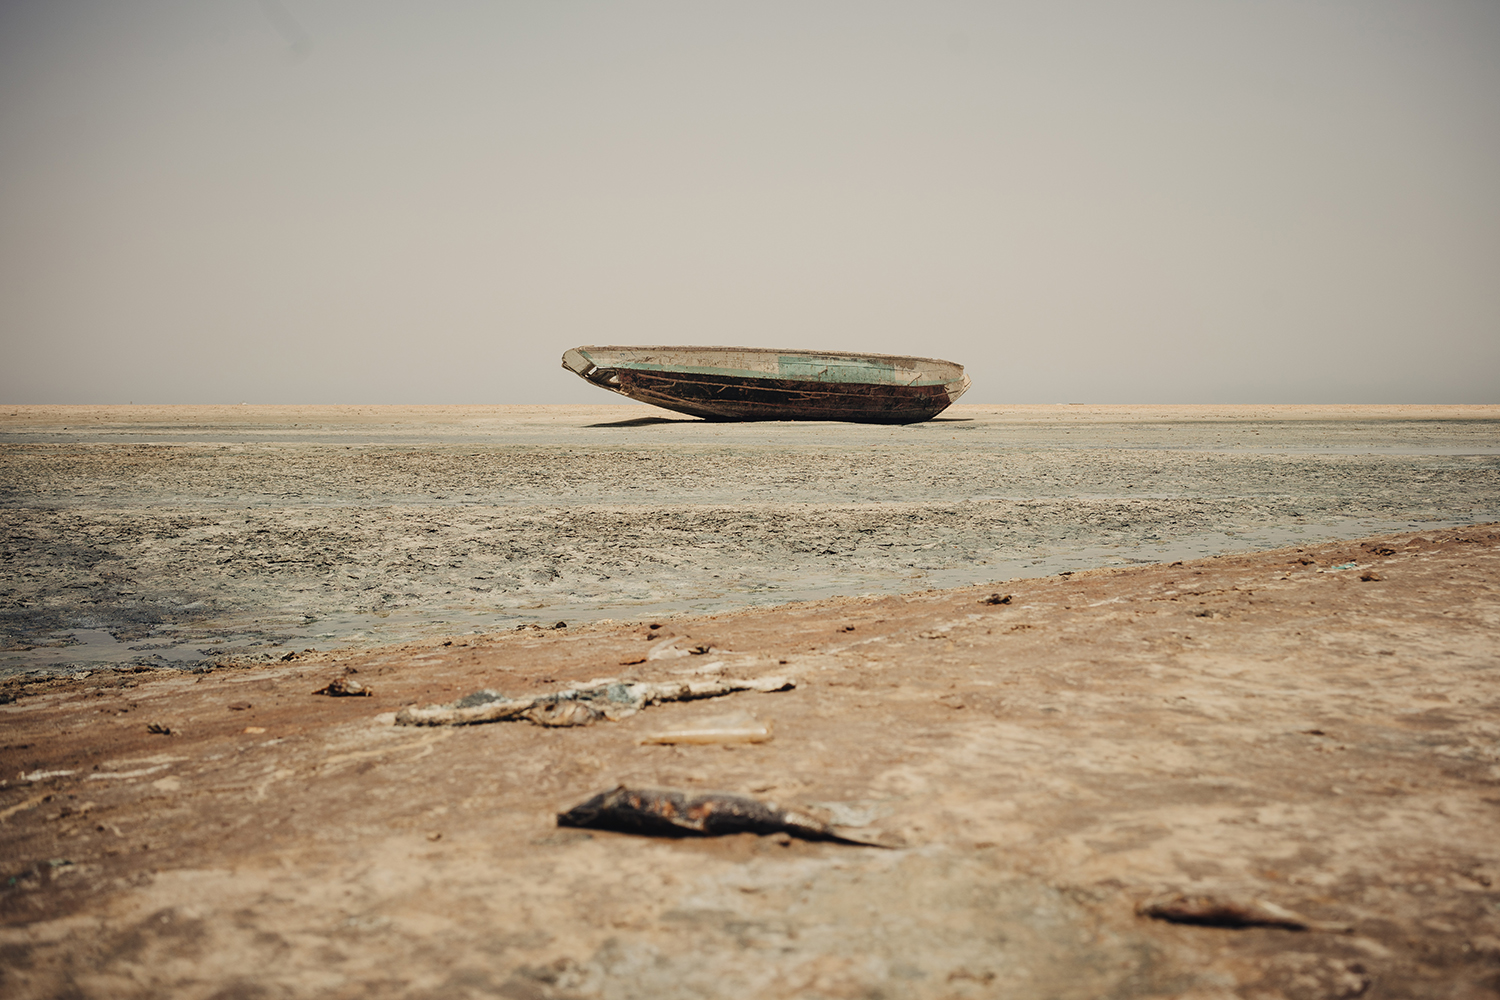 The beach near Lem Seafood fishmeal factory has become a squalid mess of debris and a stench from the wastewater released by factories like Lem Seafood permeates the air, June 30, 2016. In recent years, the Mauritanian government has welcomed Chinese investment in the fishing industry. But according to fish-product factory employees, management is lax.